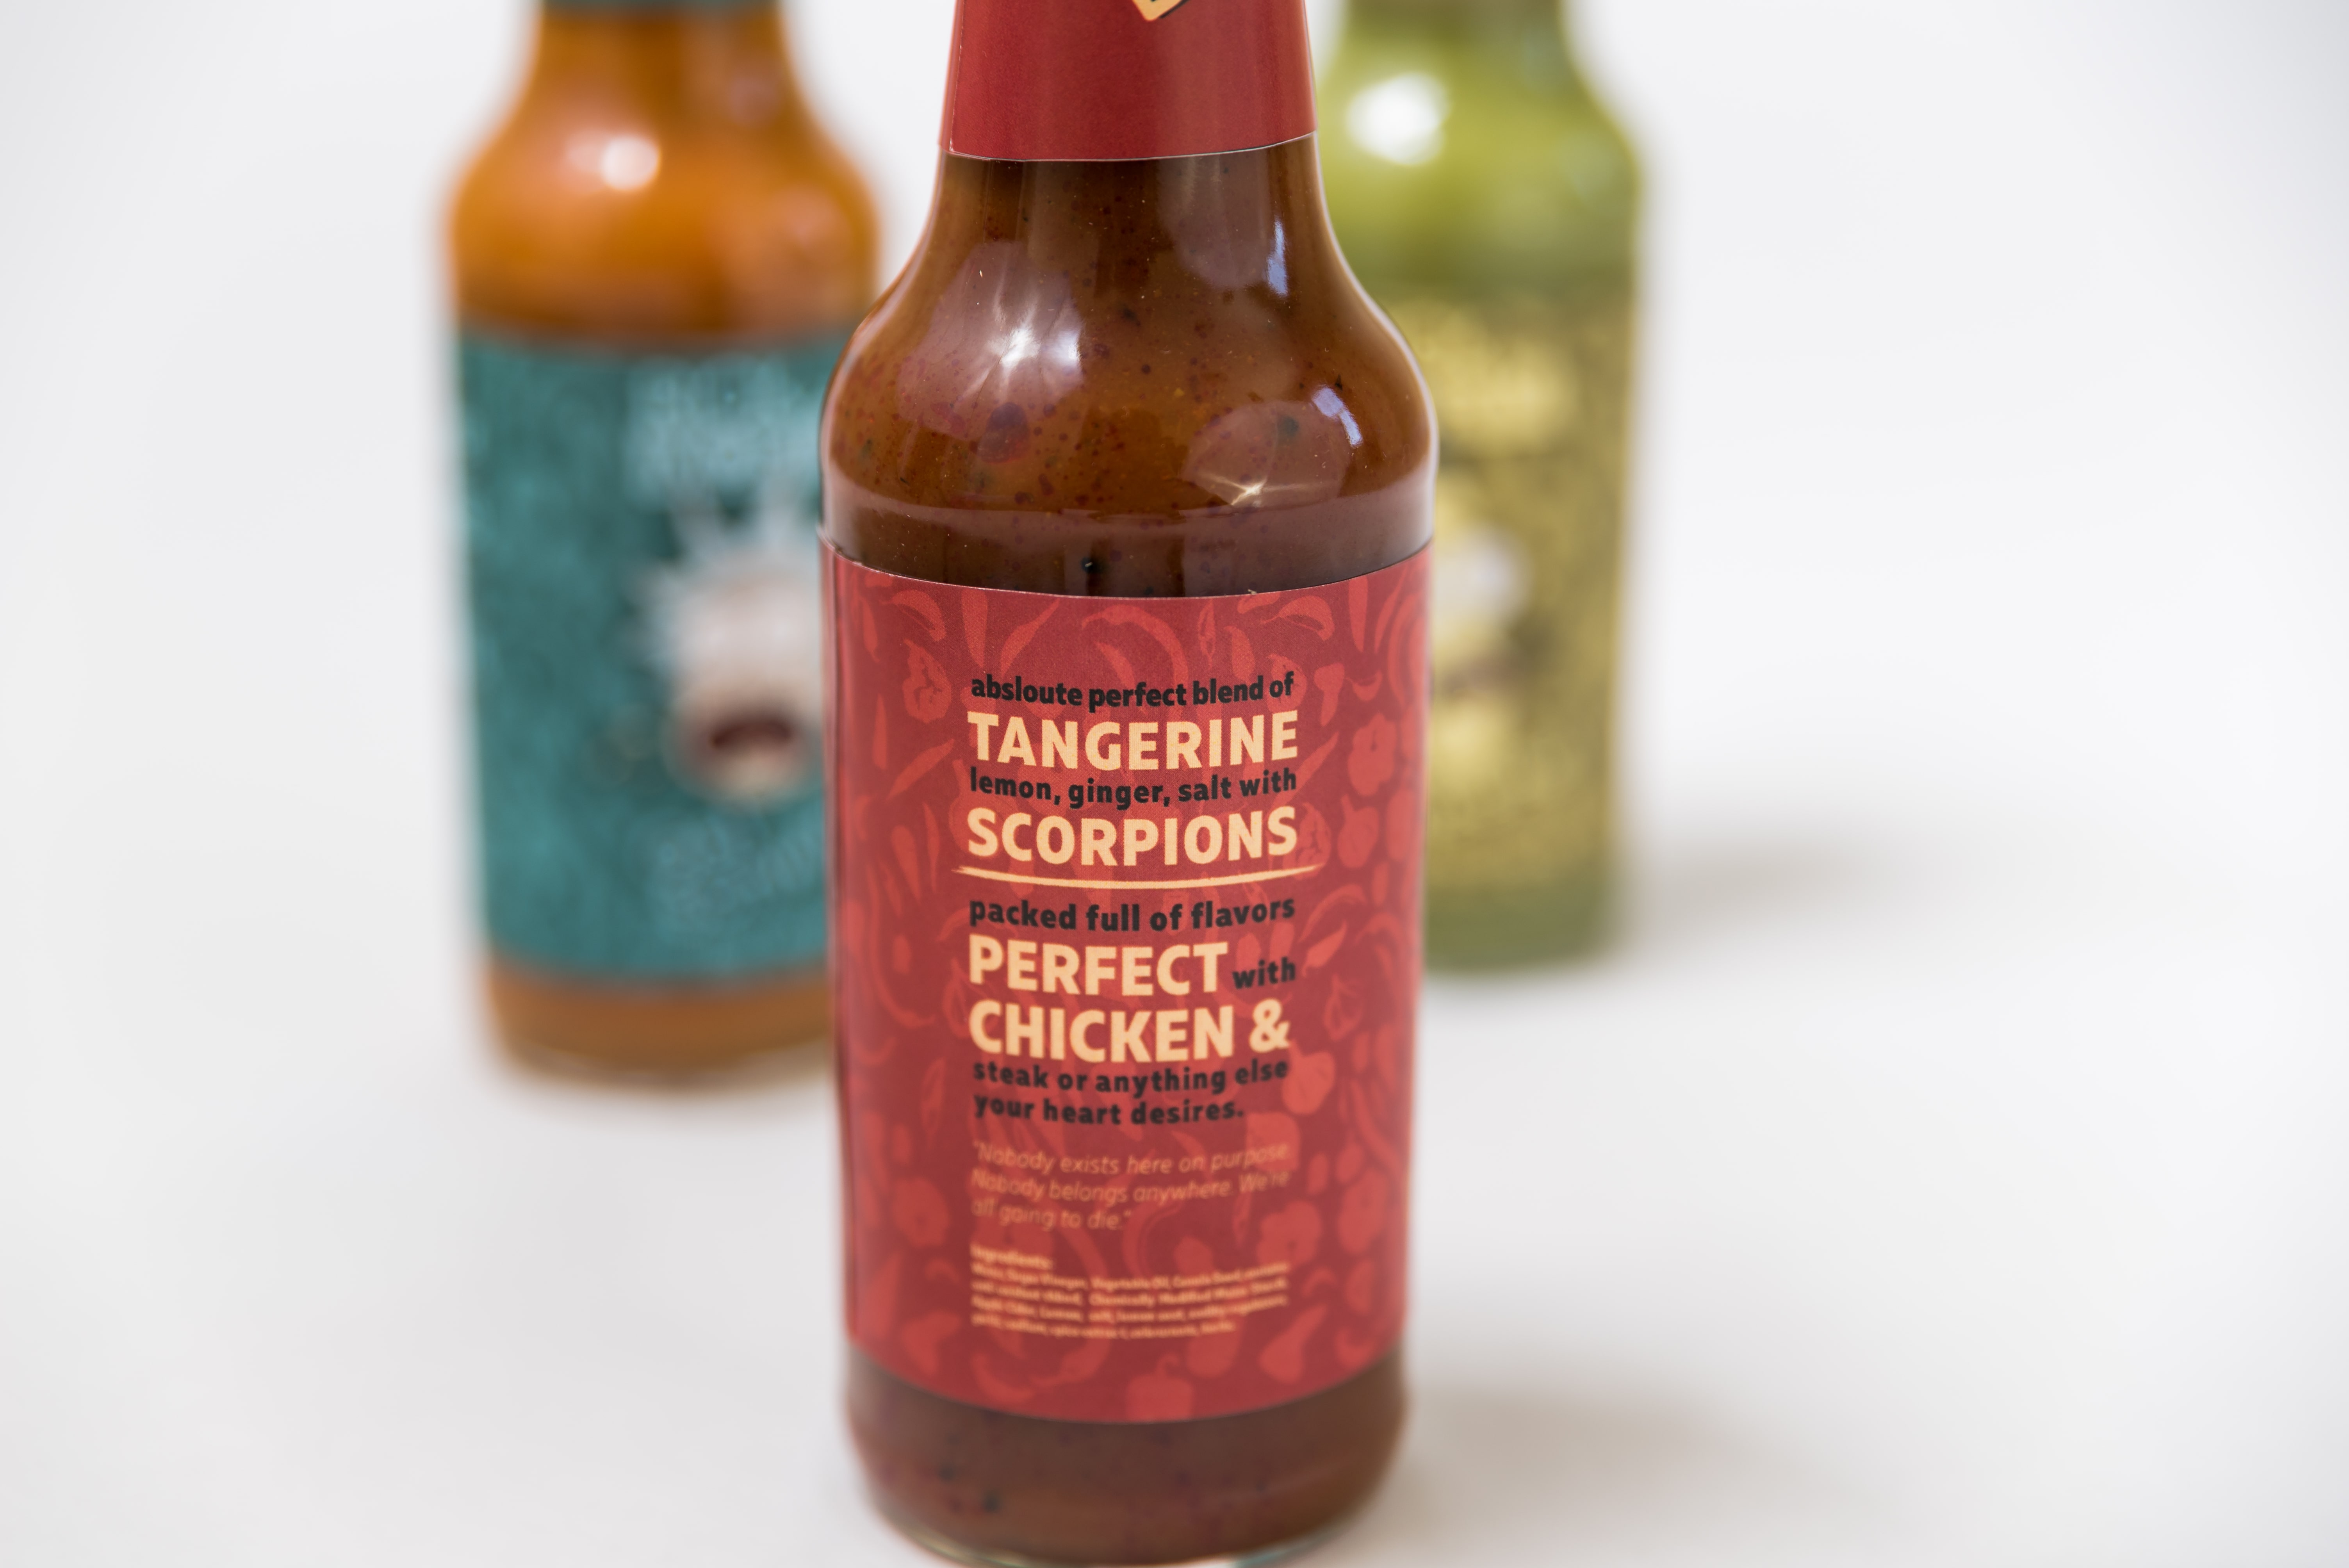 Three hotsauce bottles while focusing on the front bottle that shows the ingredients.